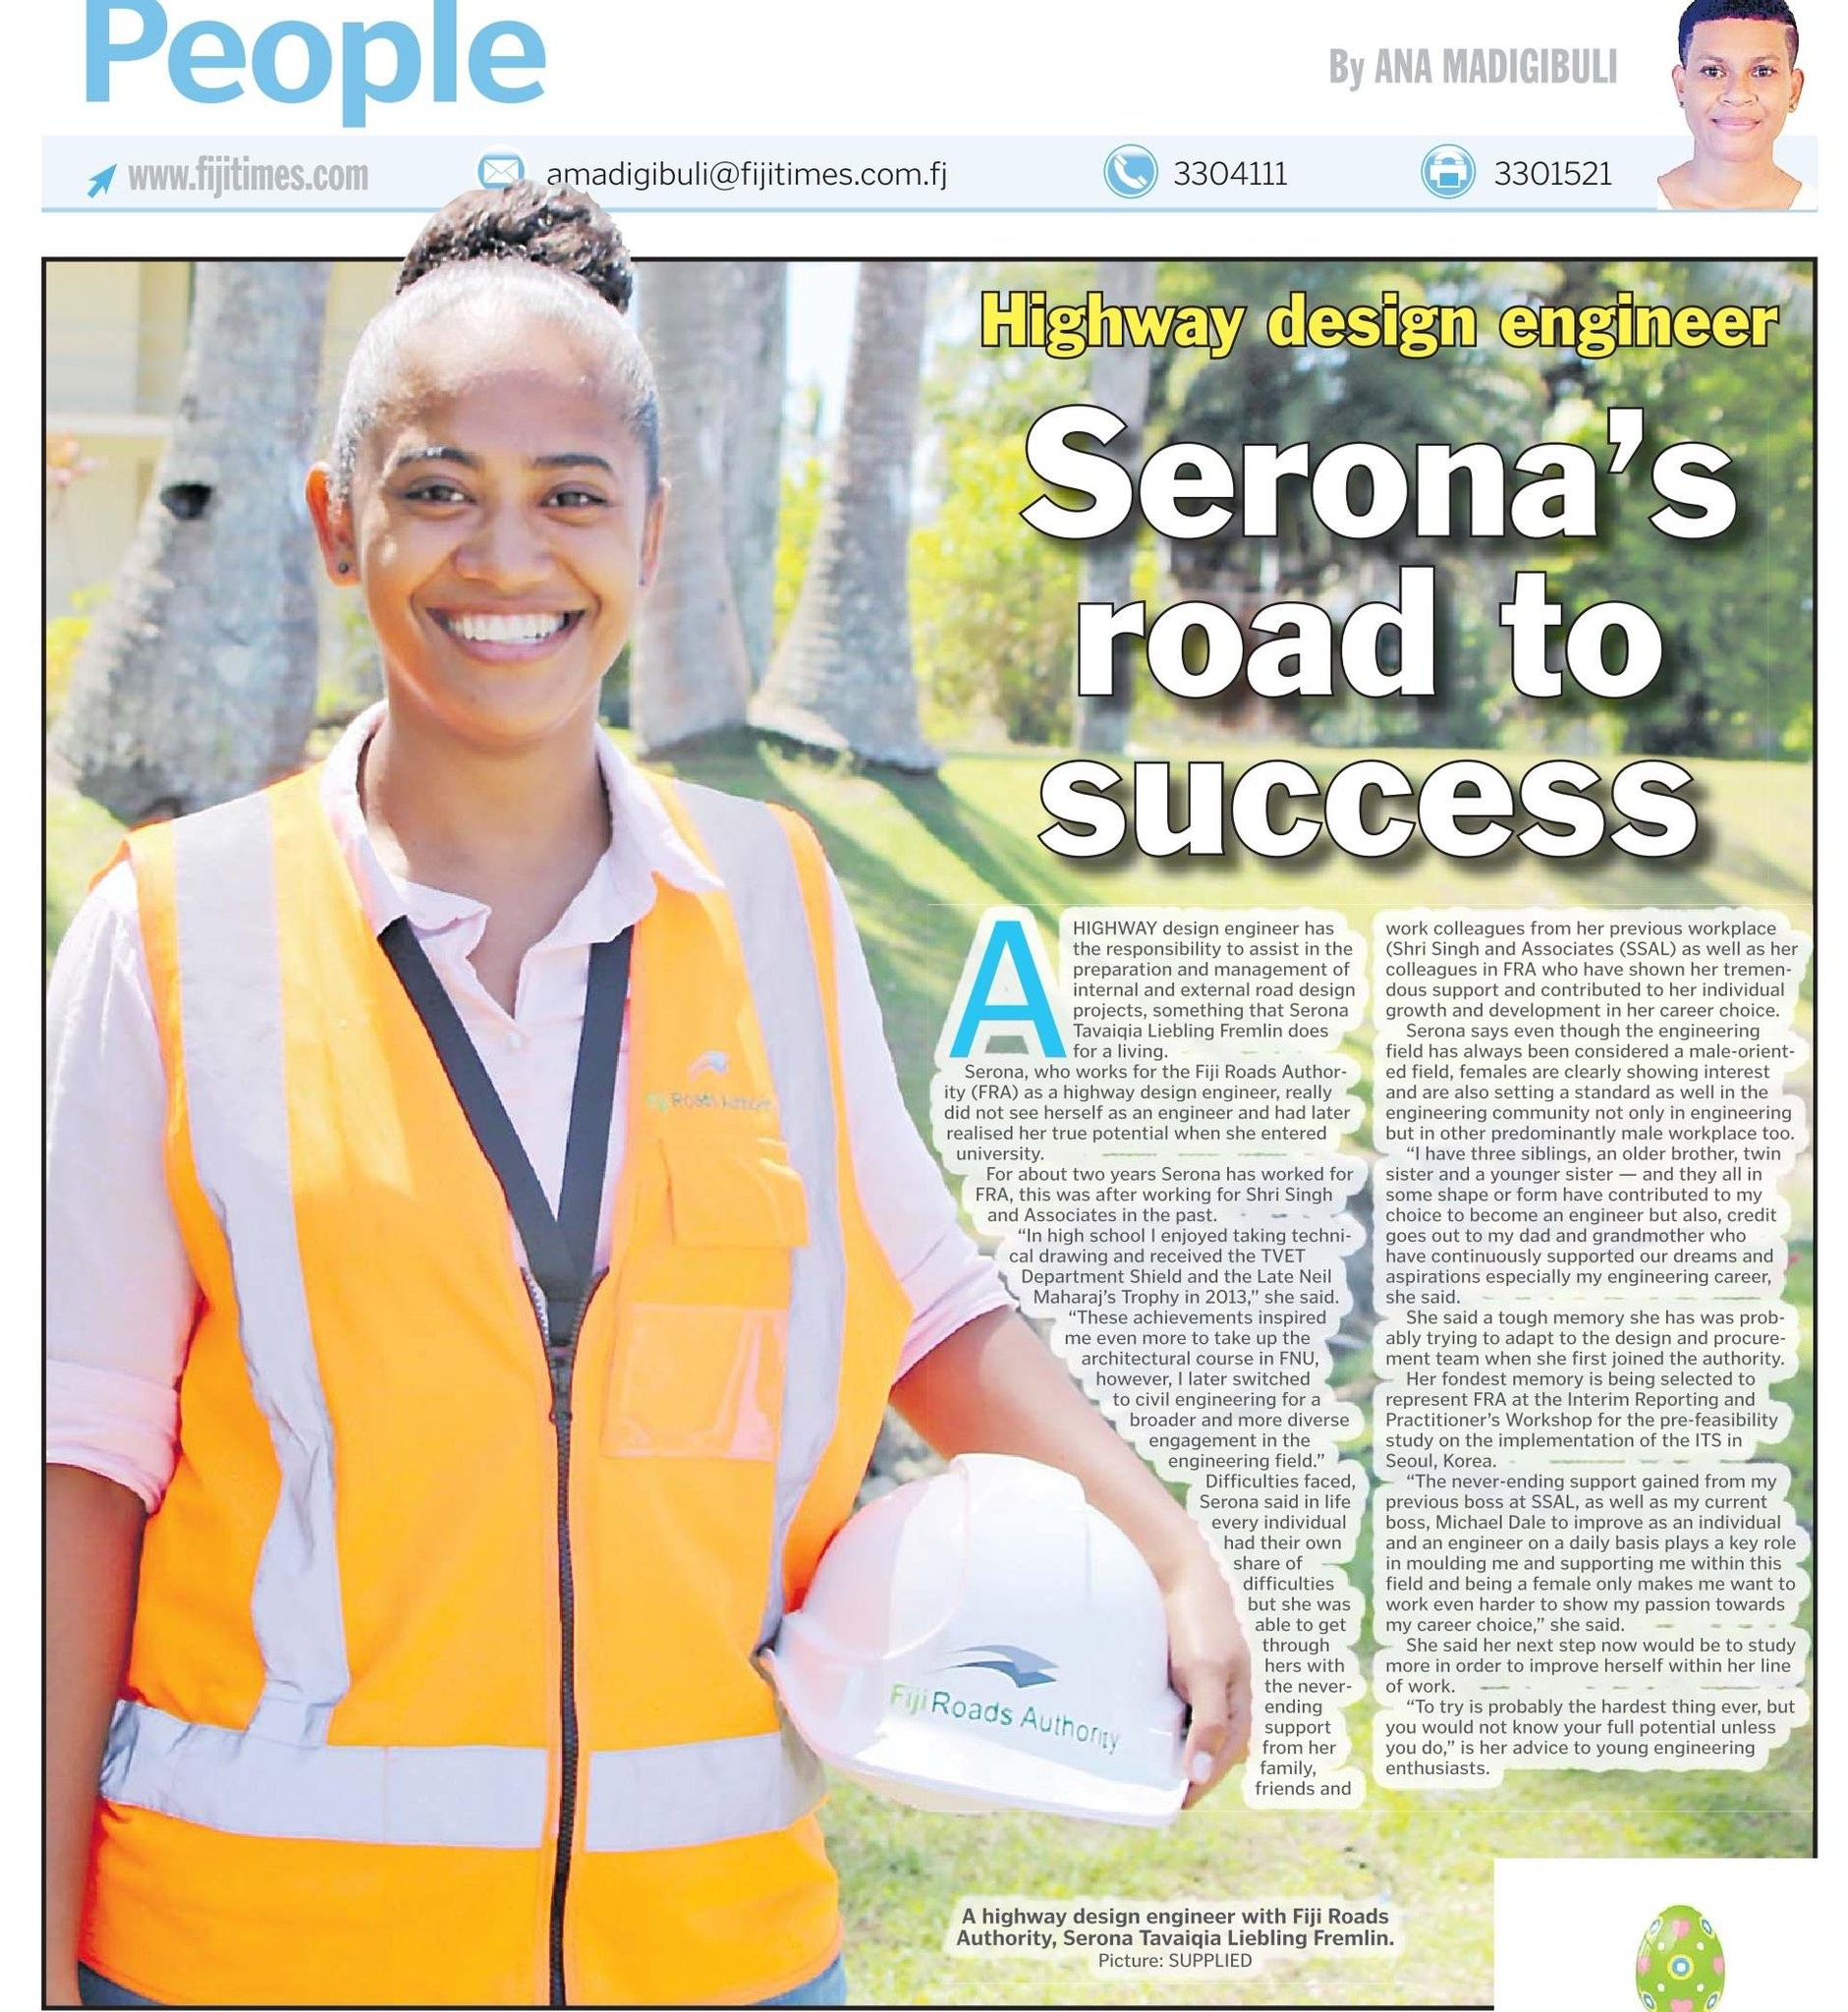 Fiji Roads Authority On Twitter Fra Assistant Highway Design Engineer Ms Serona Fremlin Is Featured In Today S Fijitimes Let S Support Women In Stem Iwd2020 Womeng Eachforequal Https T Co Idmyvbtivl